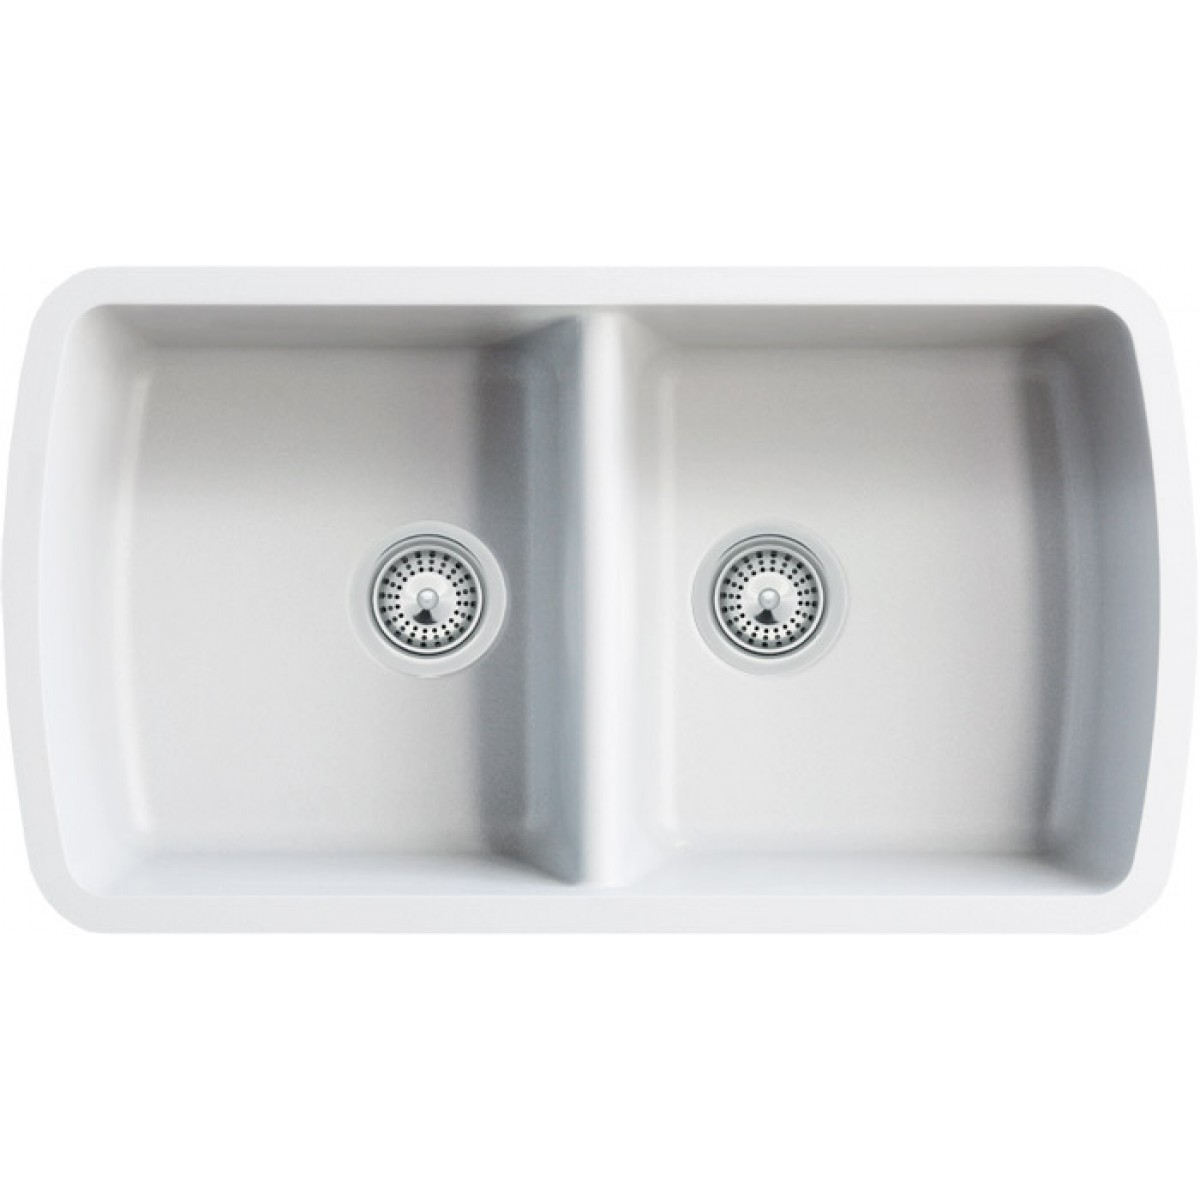 White Quartz Composite 50 50 Double Bowl Undermount Kitchen